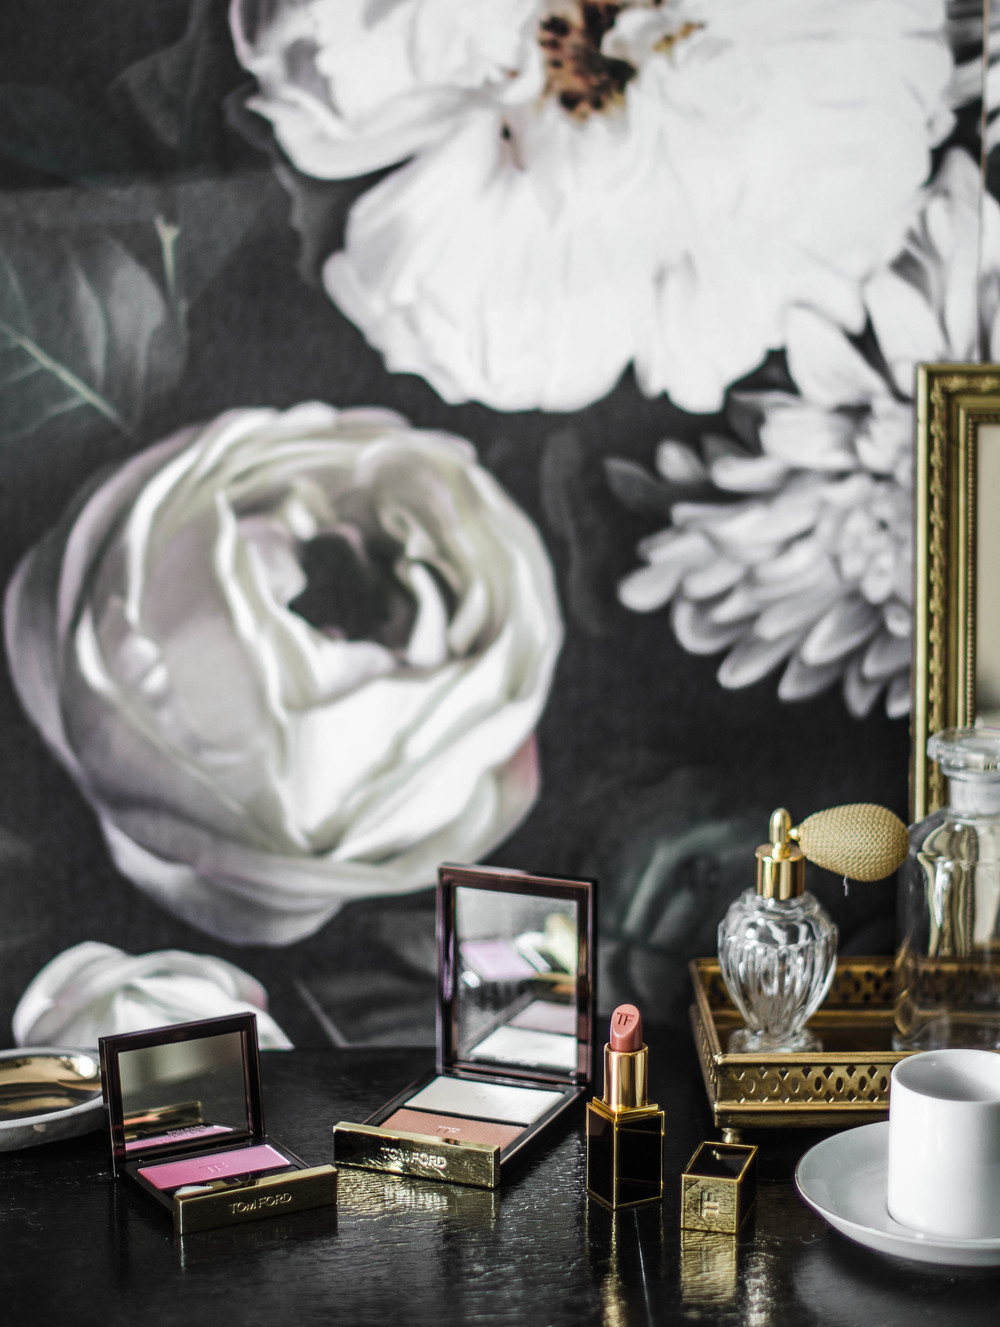 ROSE & IVY Journal On the Vanity Tom Ford Fall 2015